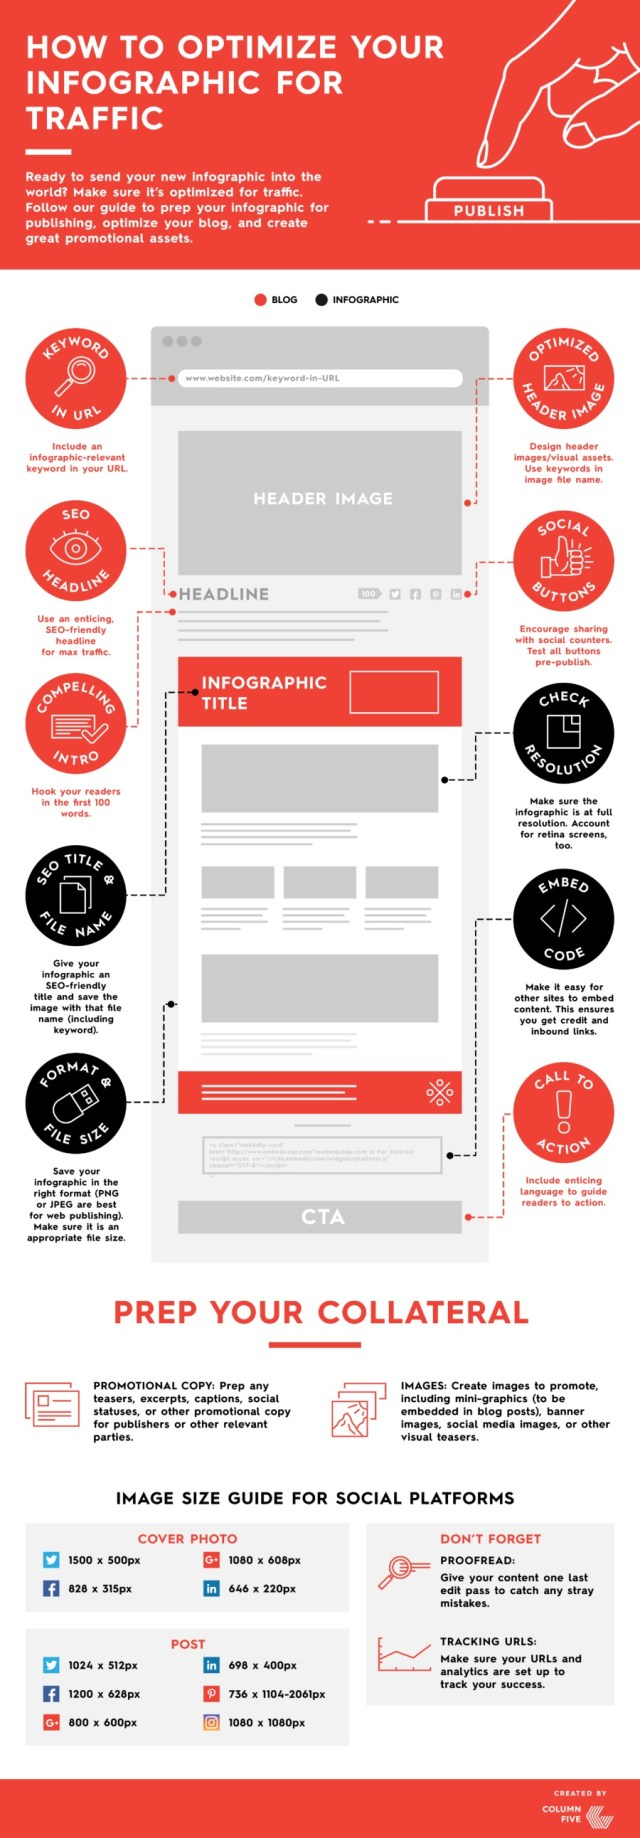 Optimize Infographic info